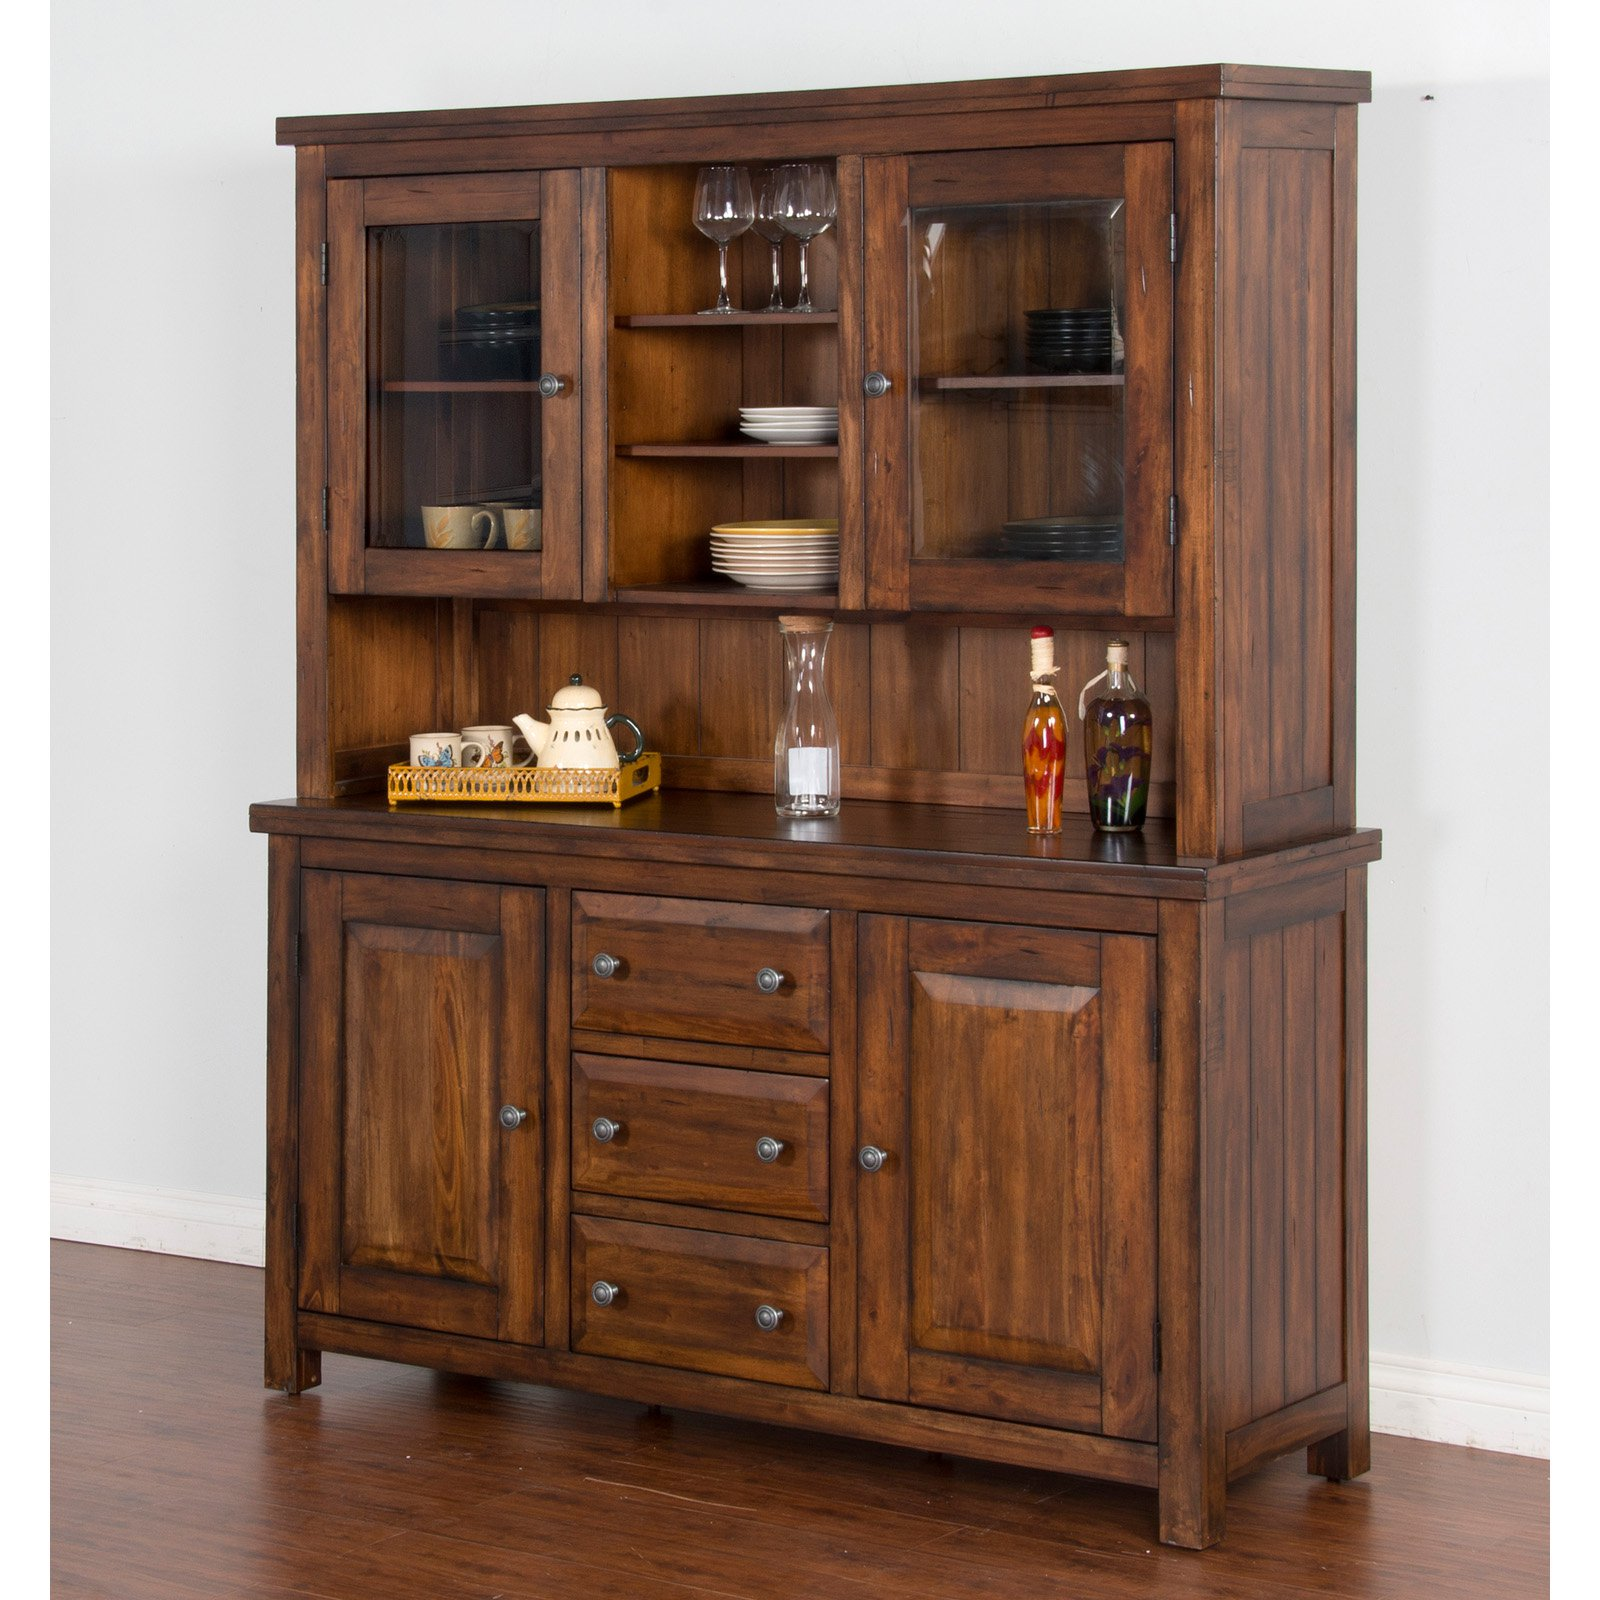 Sunny Designs Tuscany Buffet with Hutch